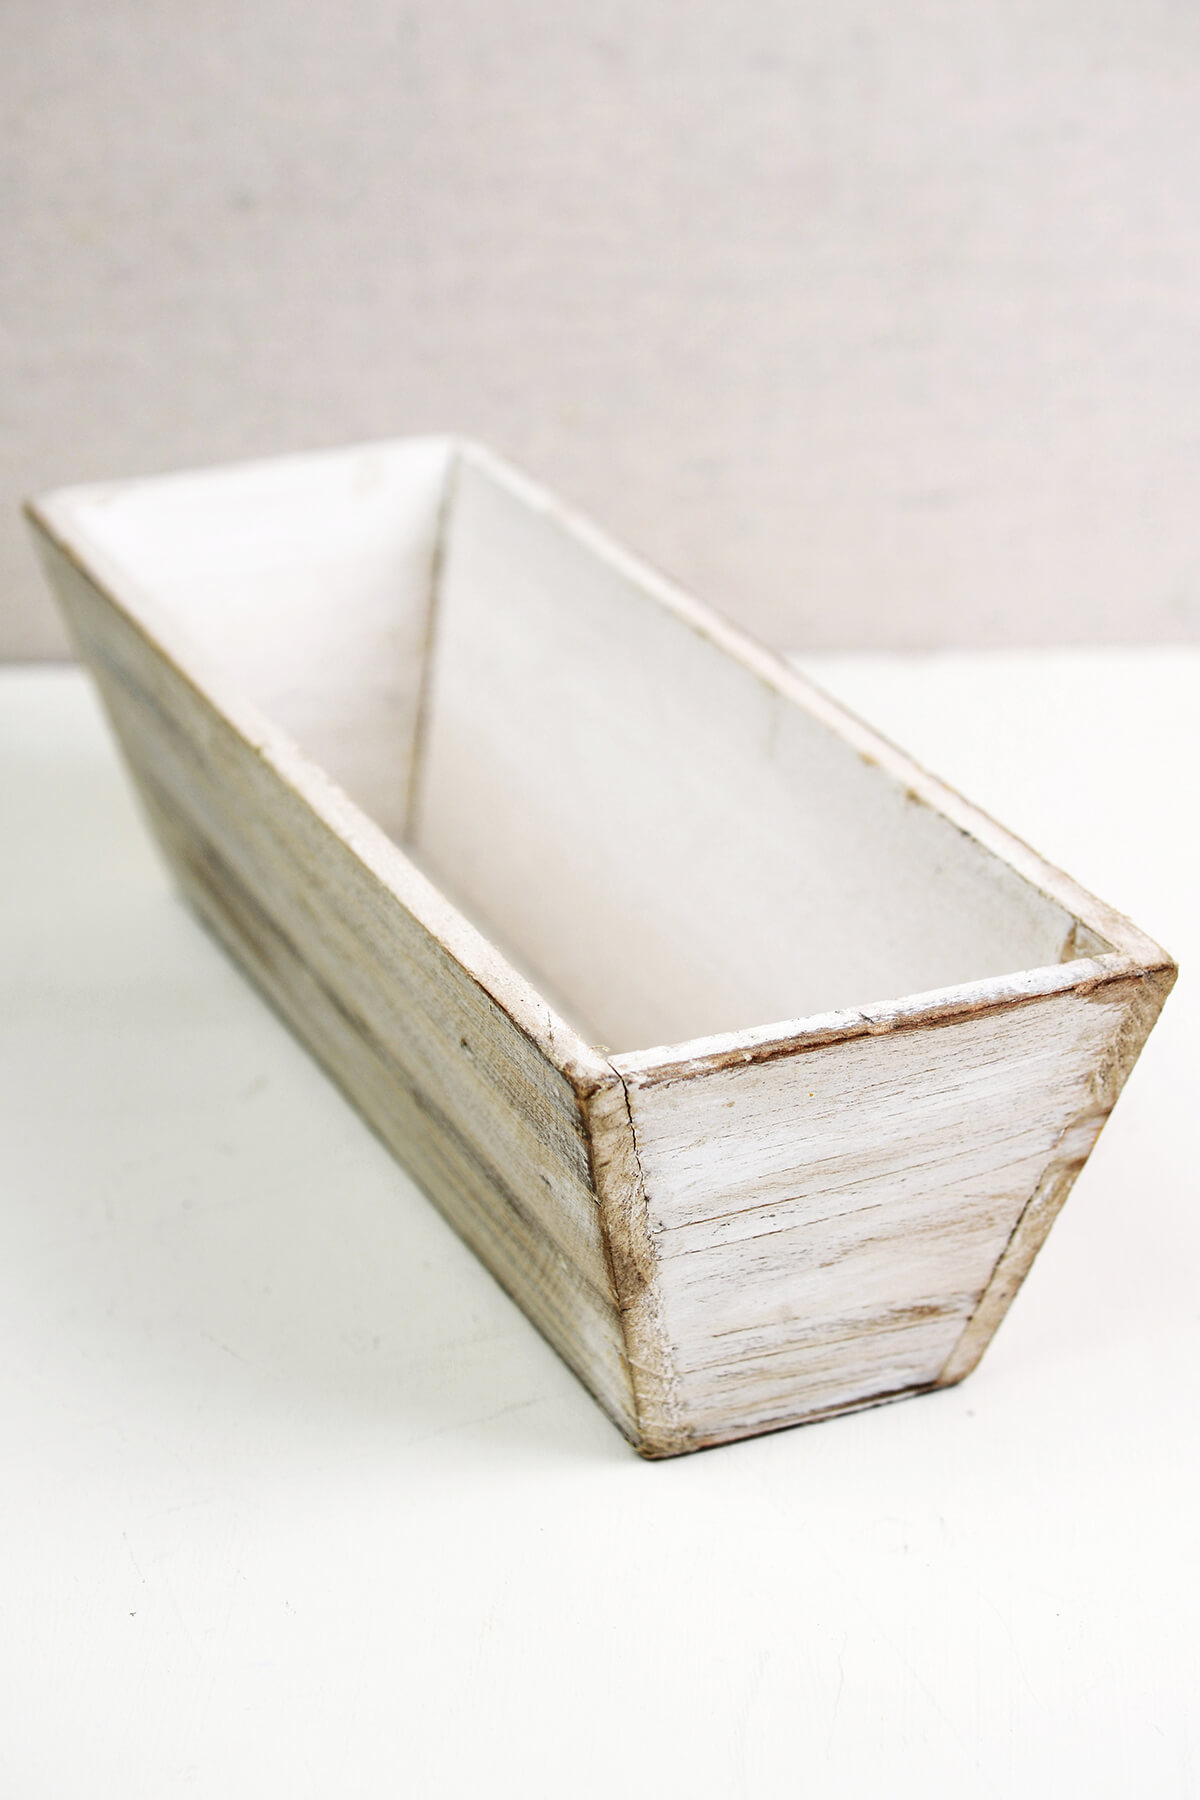 White Tapered 4x12 Planter Boxes Wood